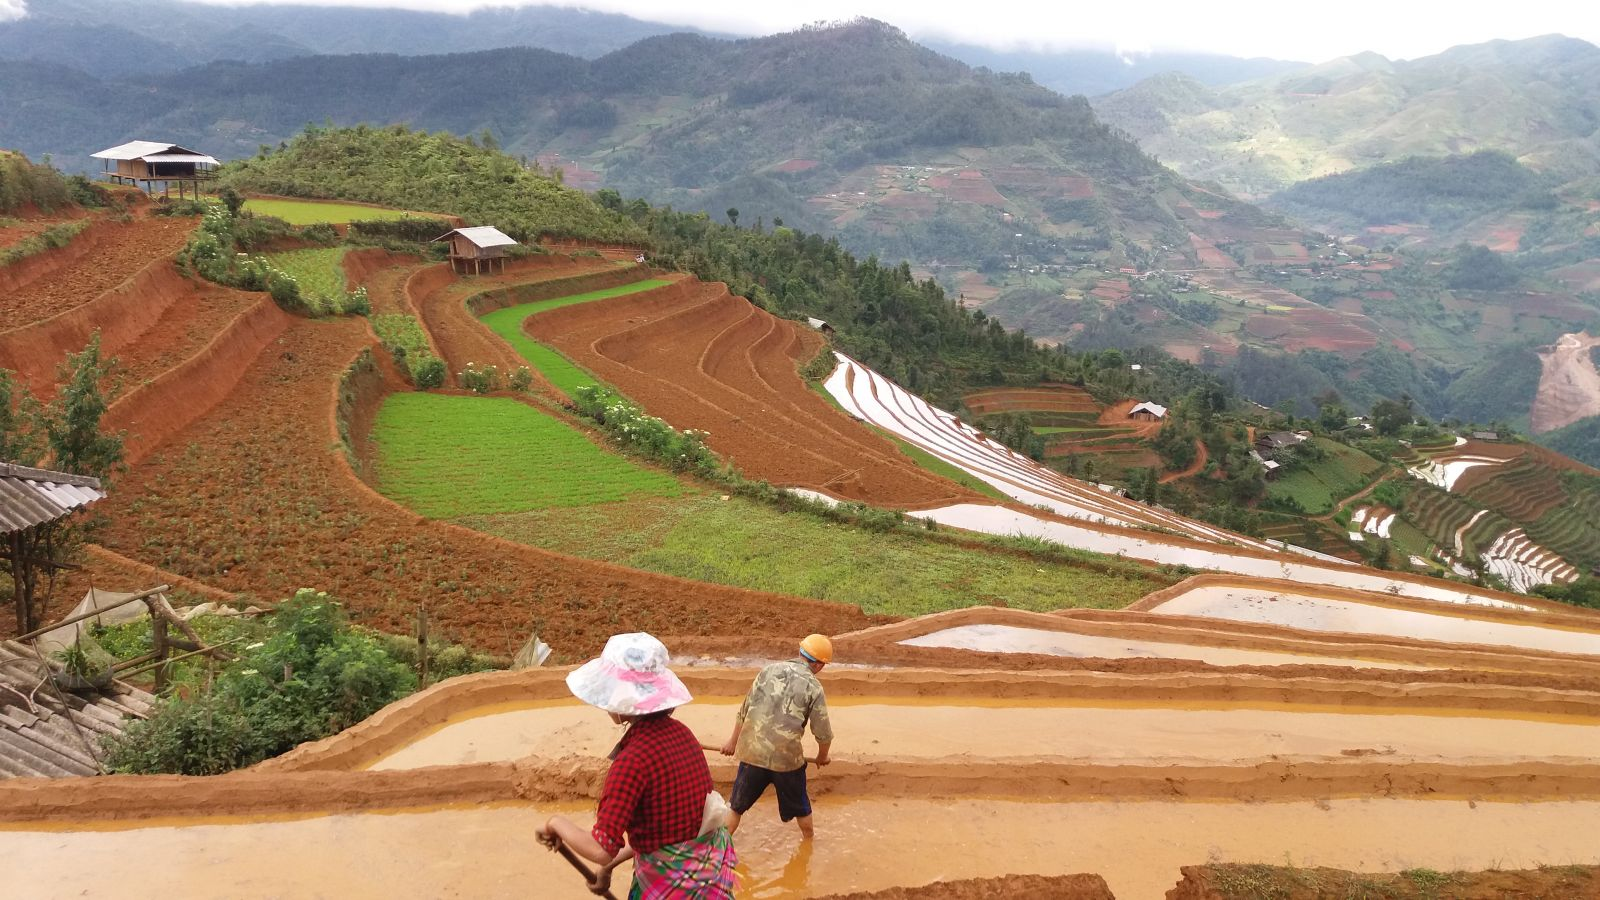 Farm work in Mu Cang Chai rice terraces